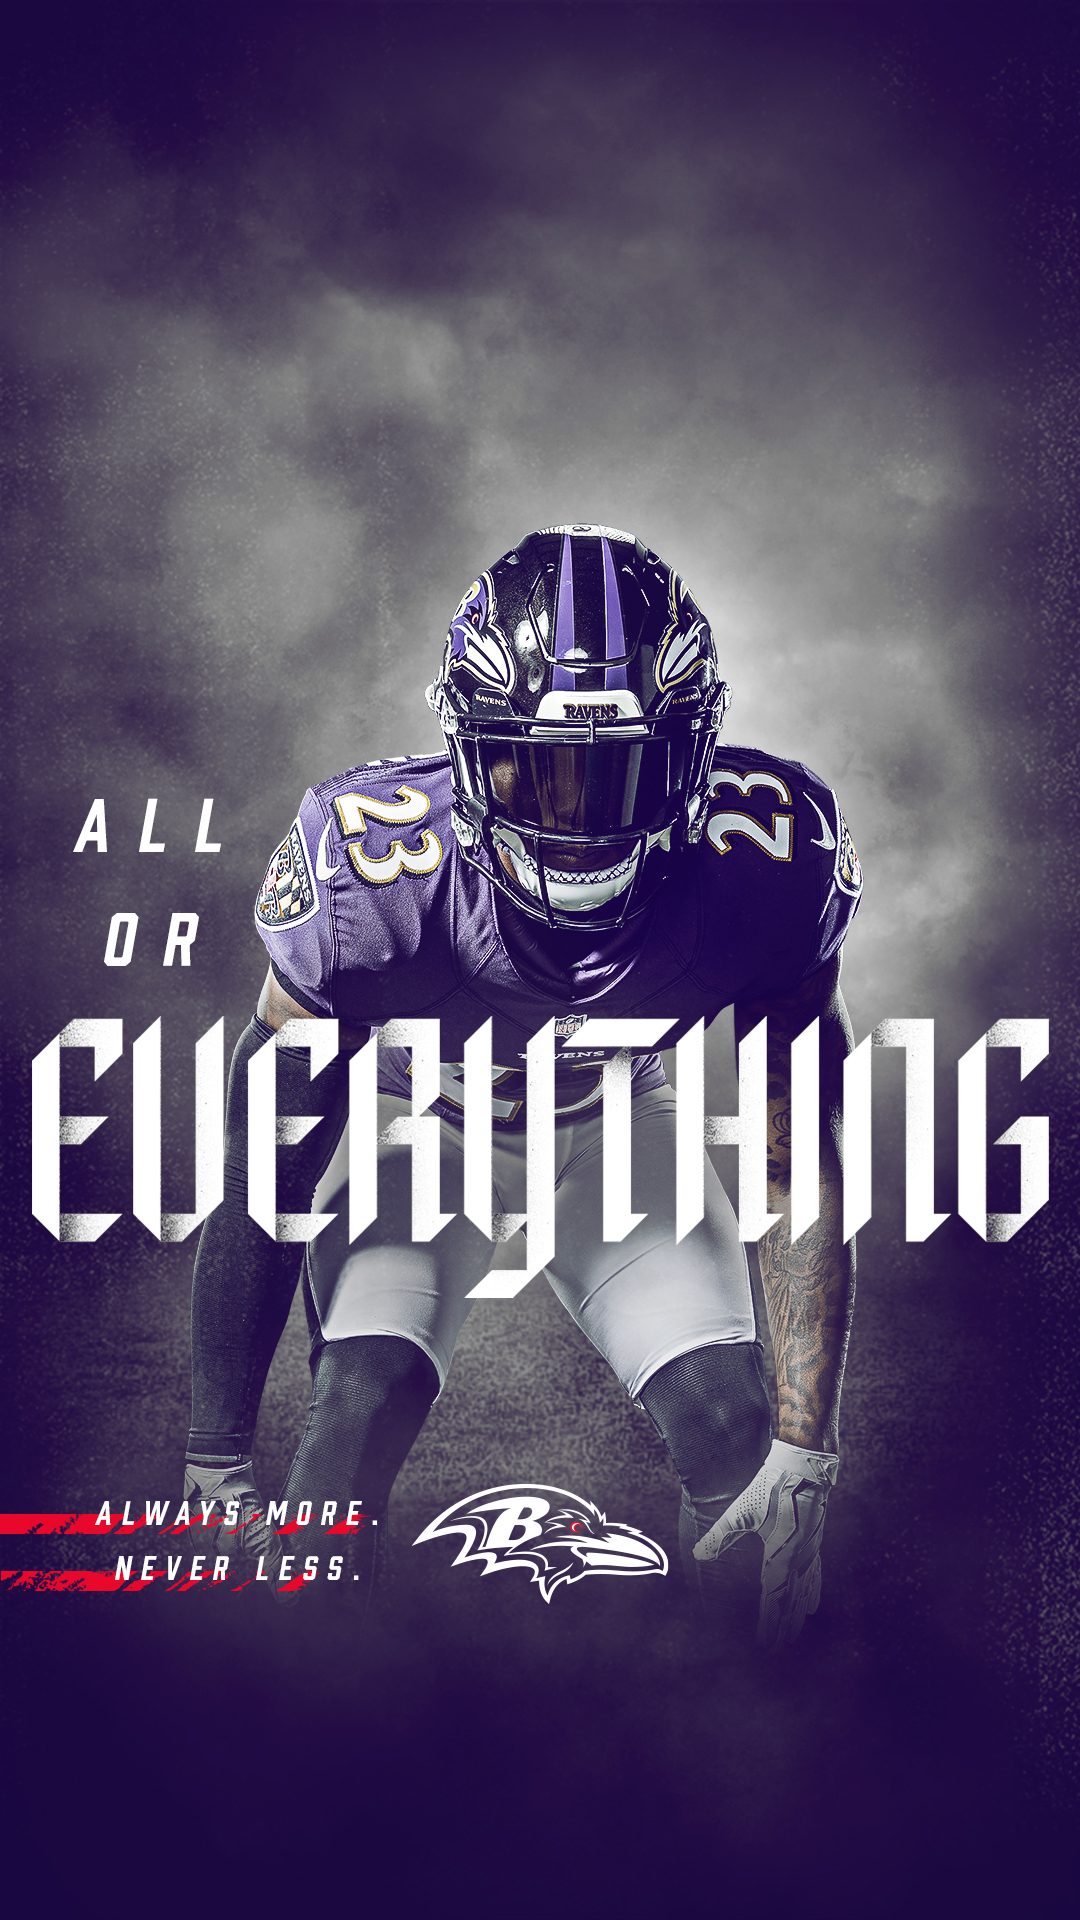 Ravens Wallpapers Baltimore Ravens baltimoreravenscom 1080x1920